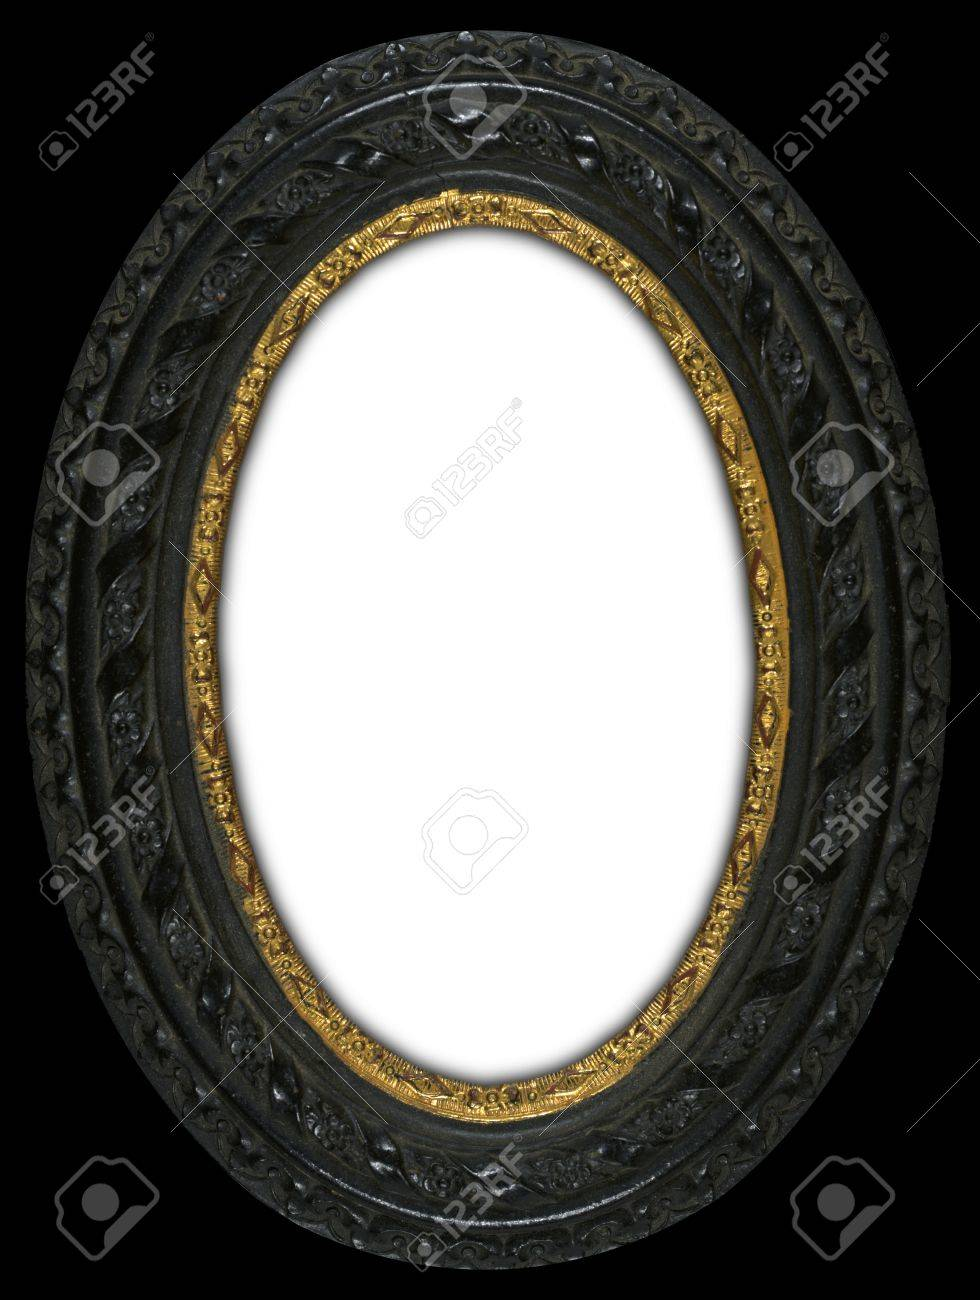 Carved Oval Antique Frame With A Gold Band Insert Circa 1850 Stock ...